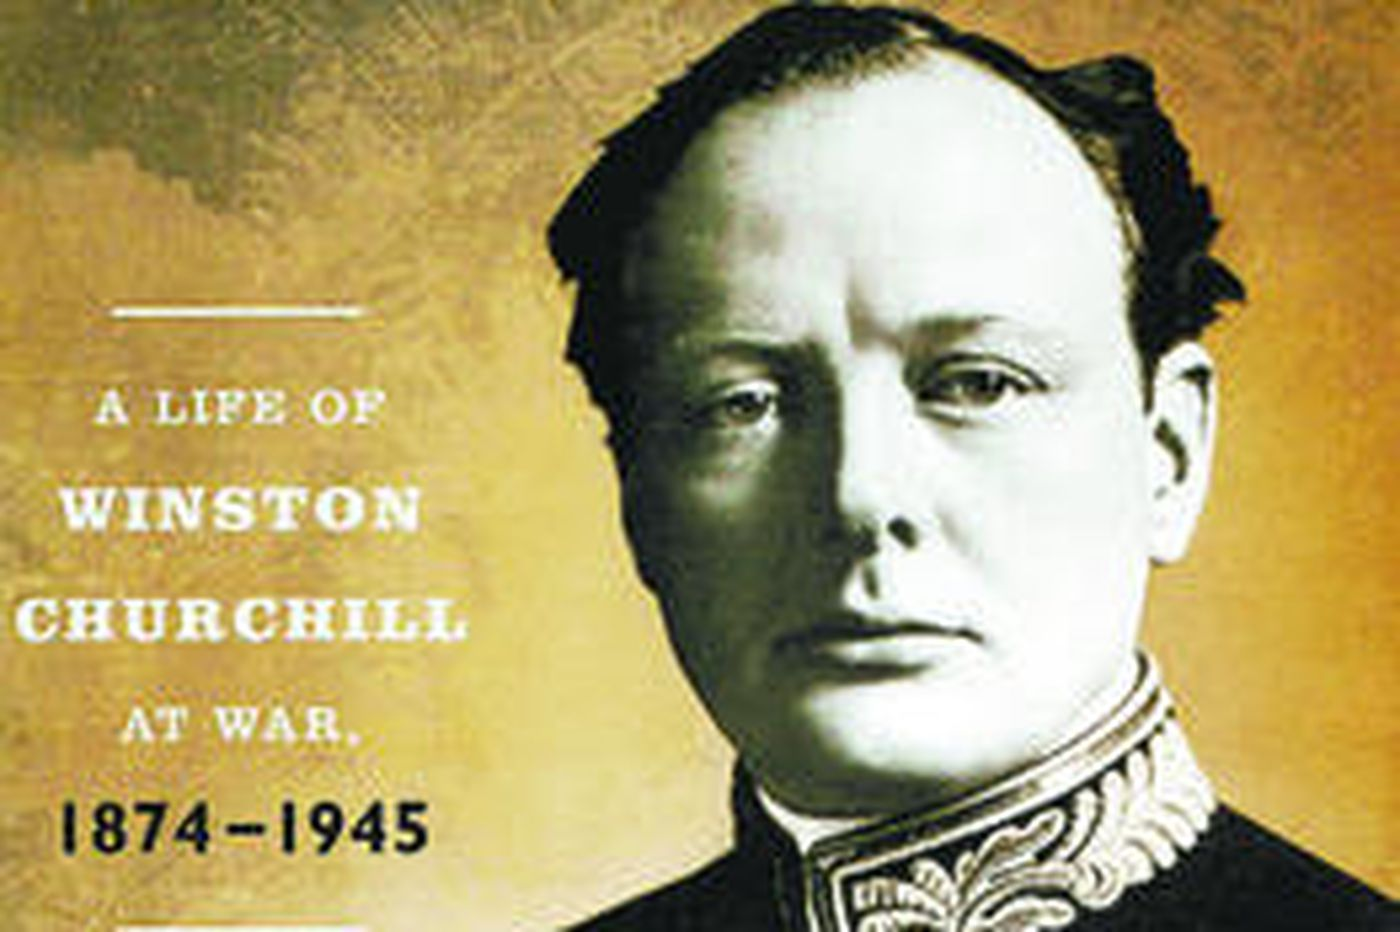 Analyzing how the military influenced Churchill